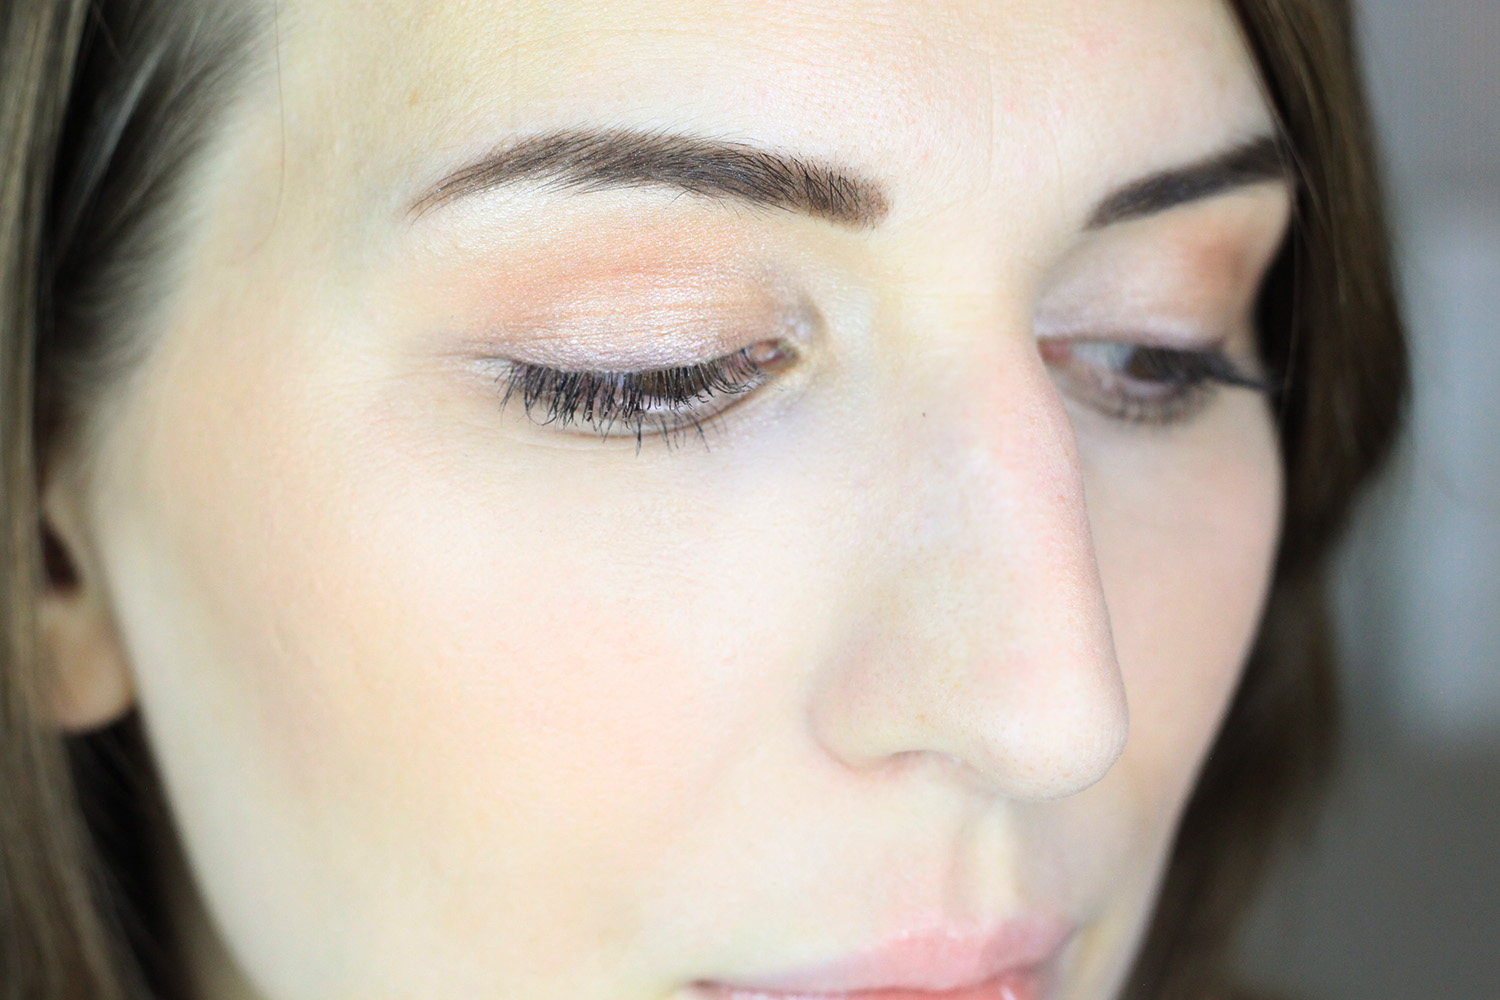 www.advance-your-style.de, Beautyblog, Berlin, Monday's Makeup, Makeup für helle Haut, Beautytipps, Makeup Tutorial, Makeup Tausch, Julia von Dreaming in Berlin , Augen Makeup, Mary-Loumanizer, The Body Shop Apricot Blush